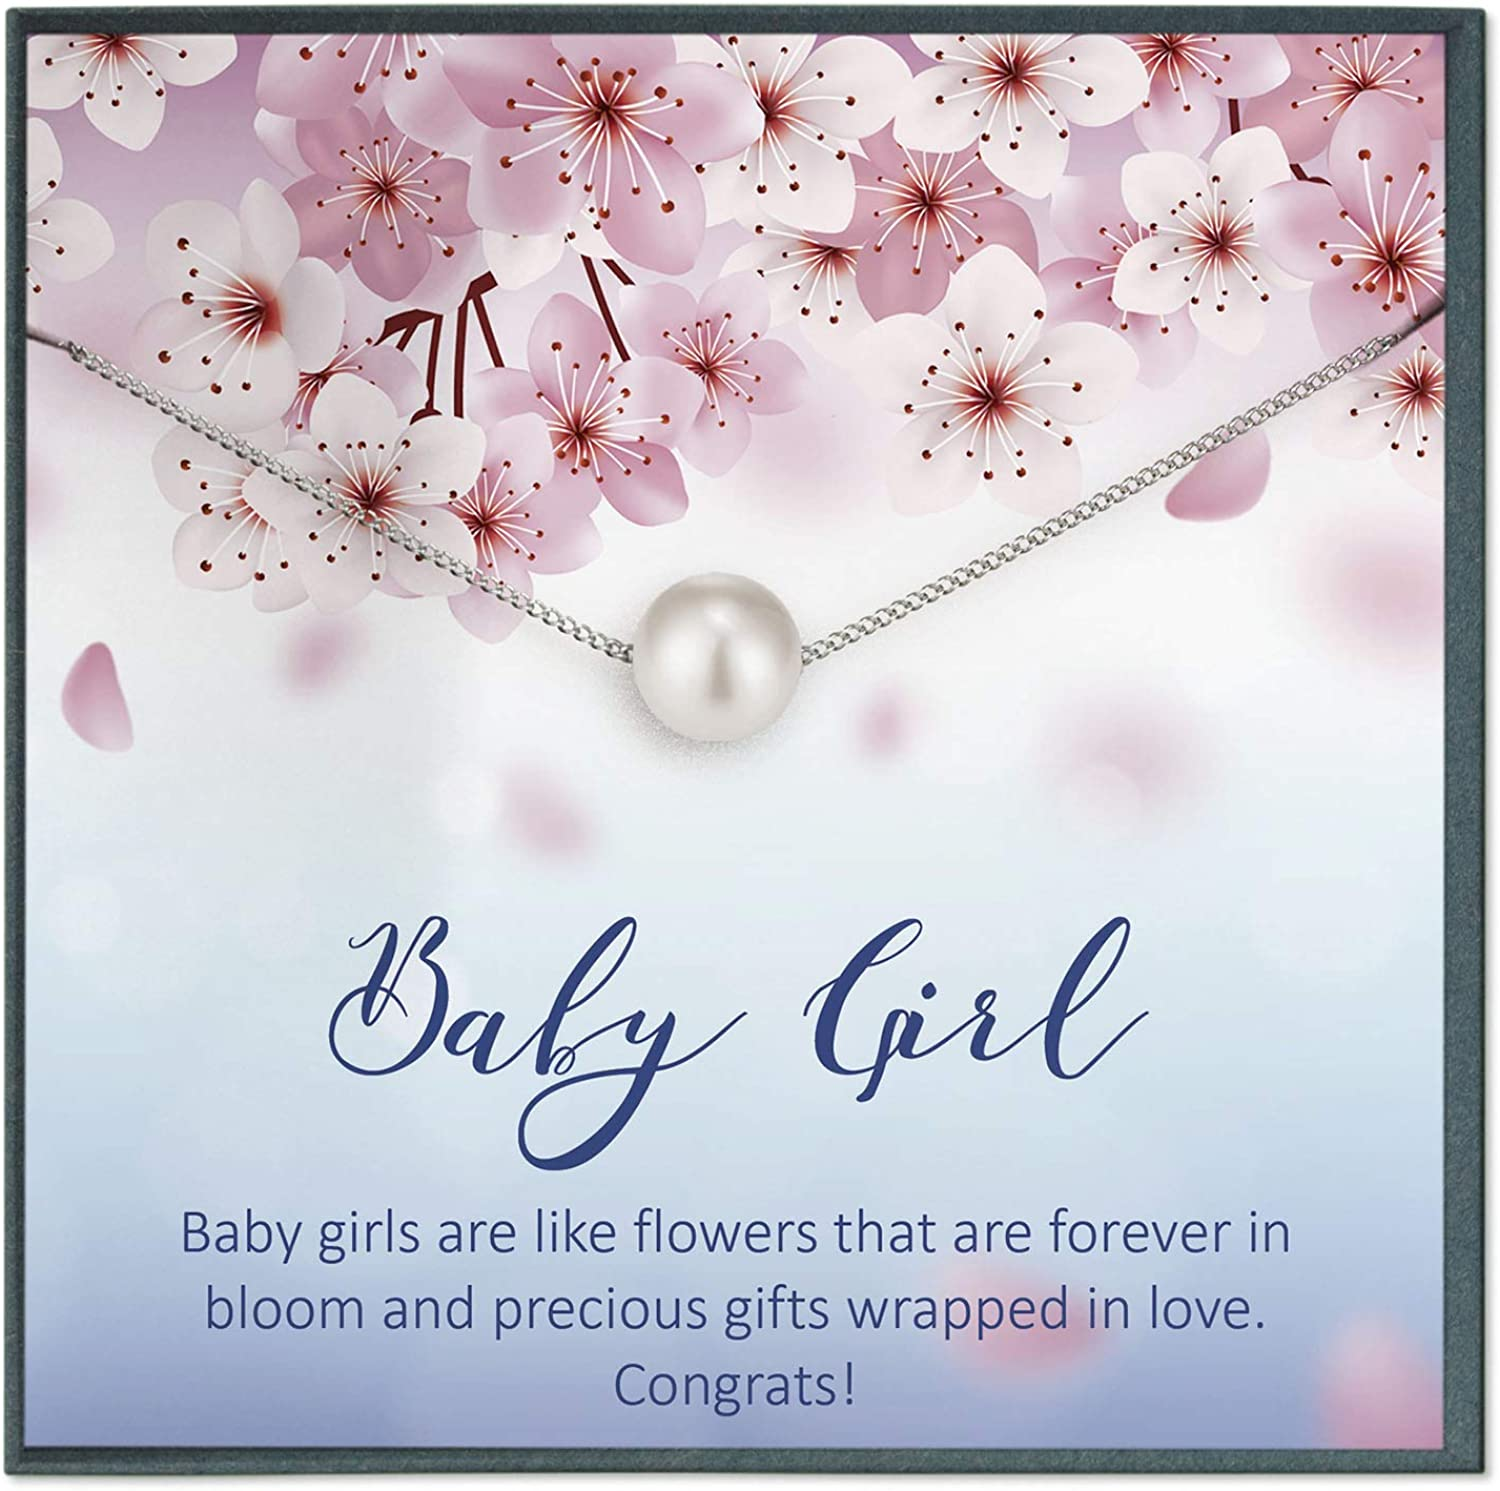 Pregnancy baby New baby gift Baby shower gift Cute baby clothes Mother/'s day gift Mama/'s new man Newborn baby New mom gift